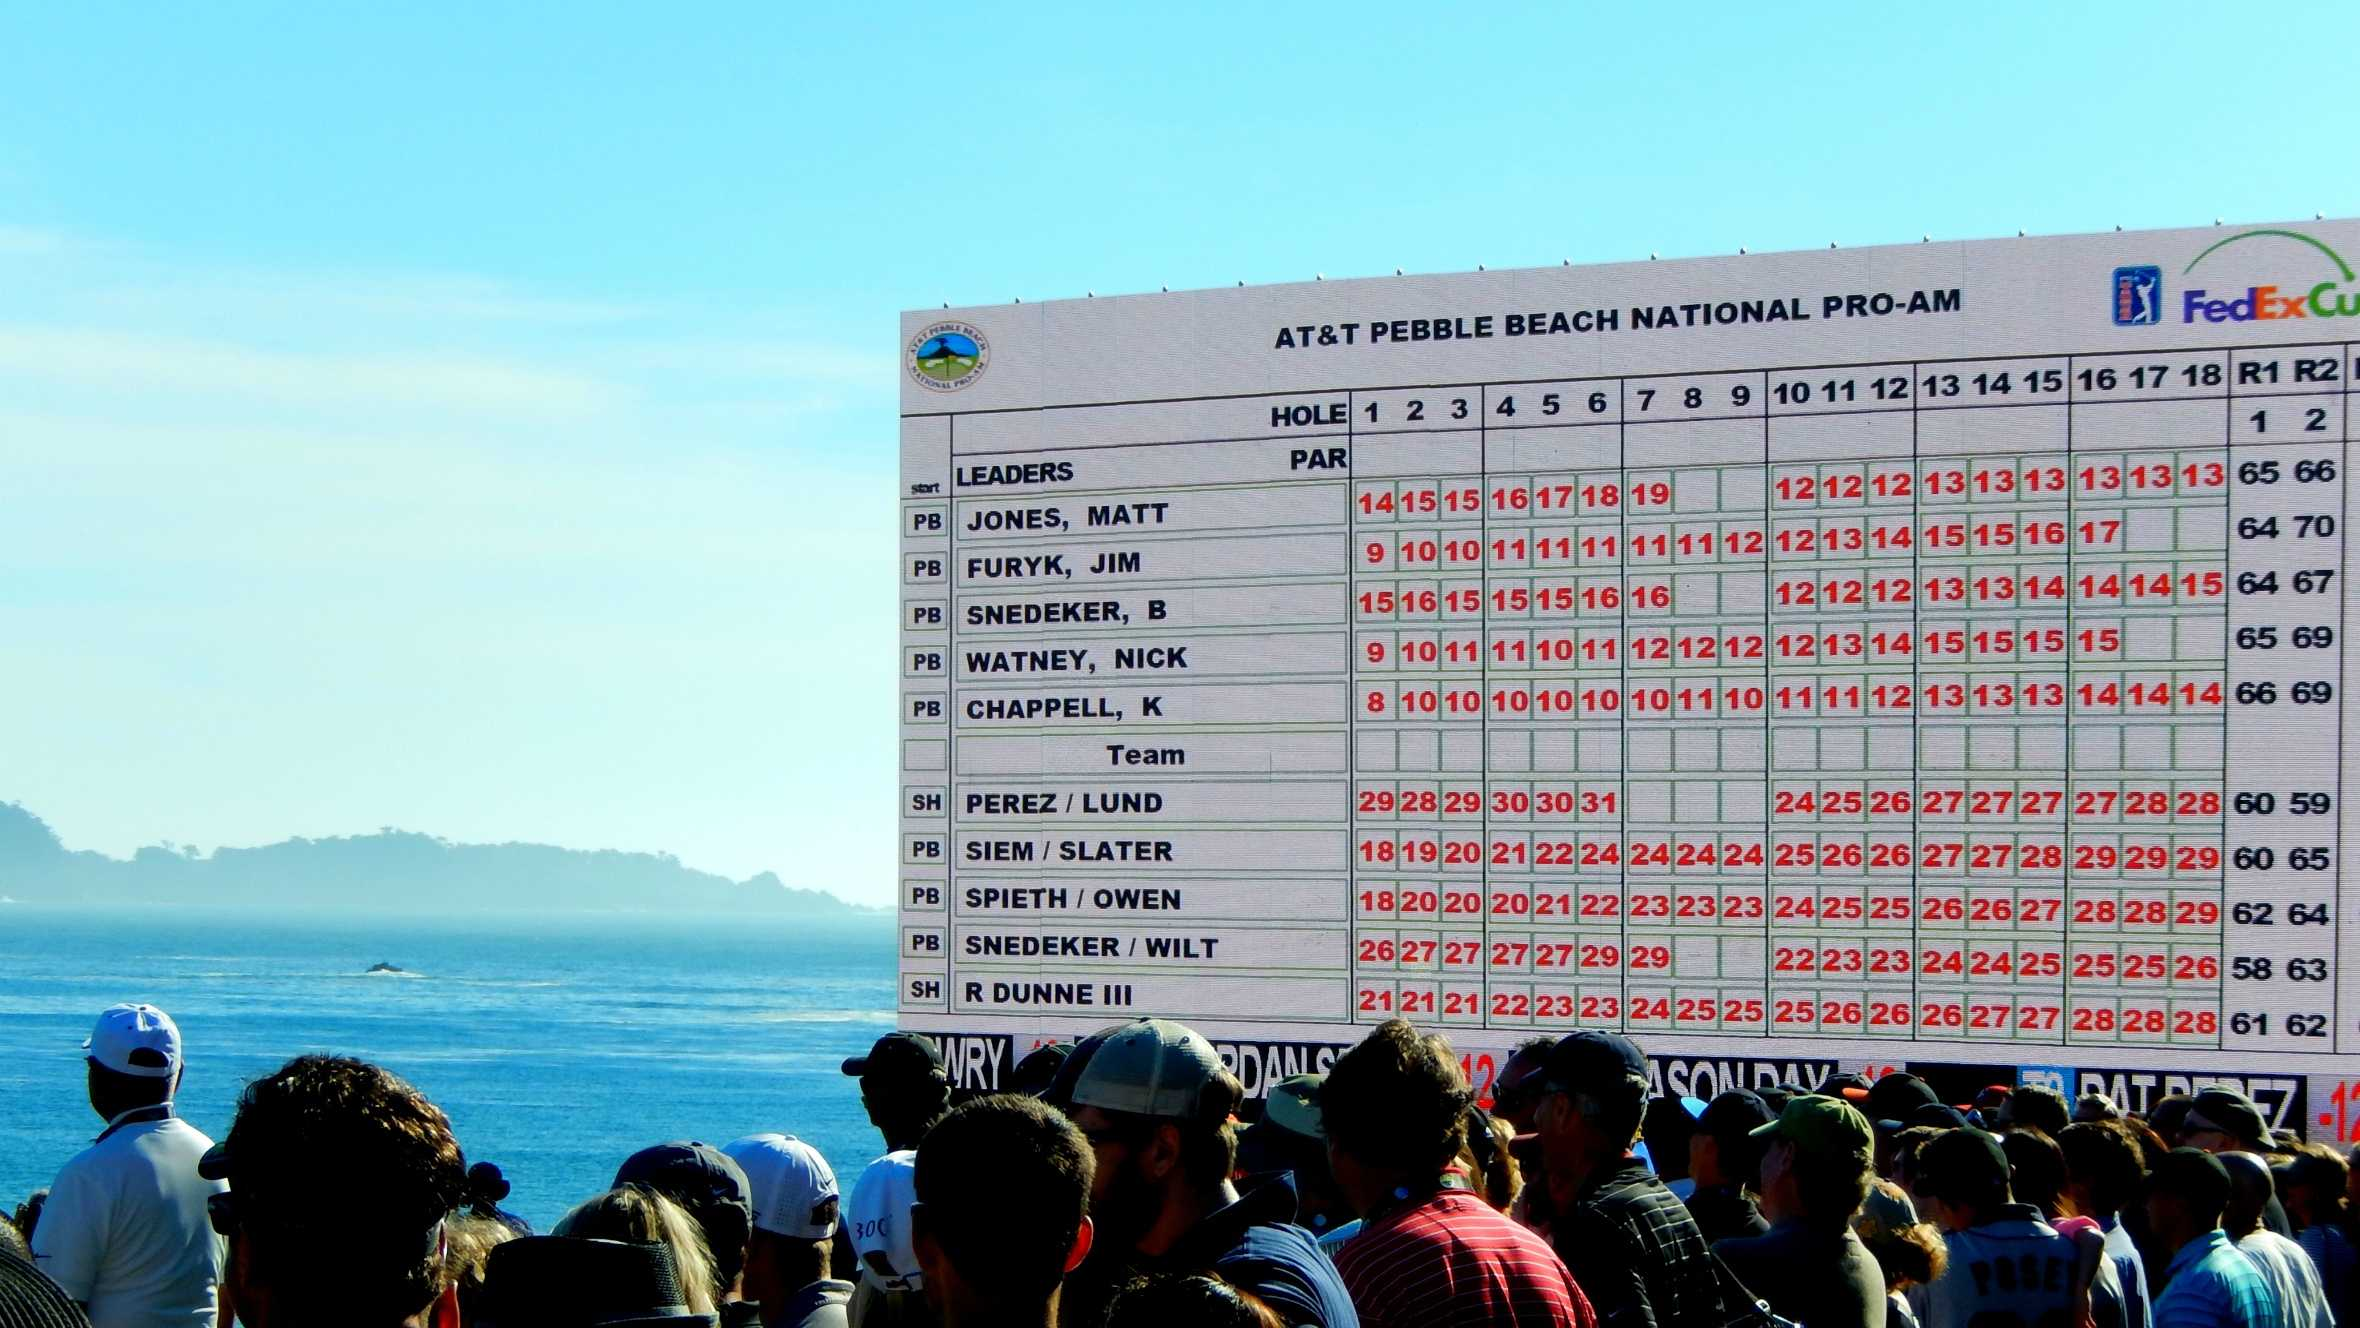 The leaderboard is seen on Saturday afternoon.